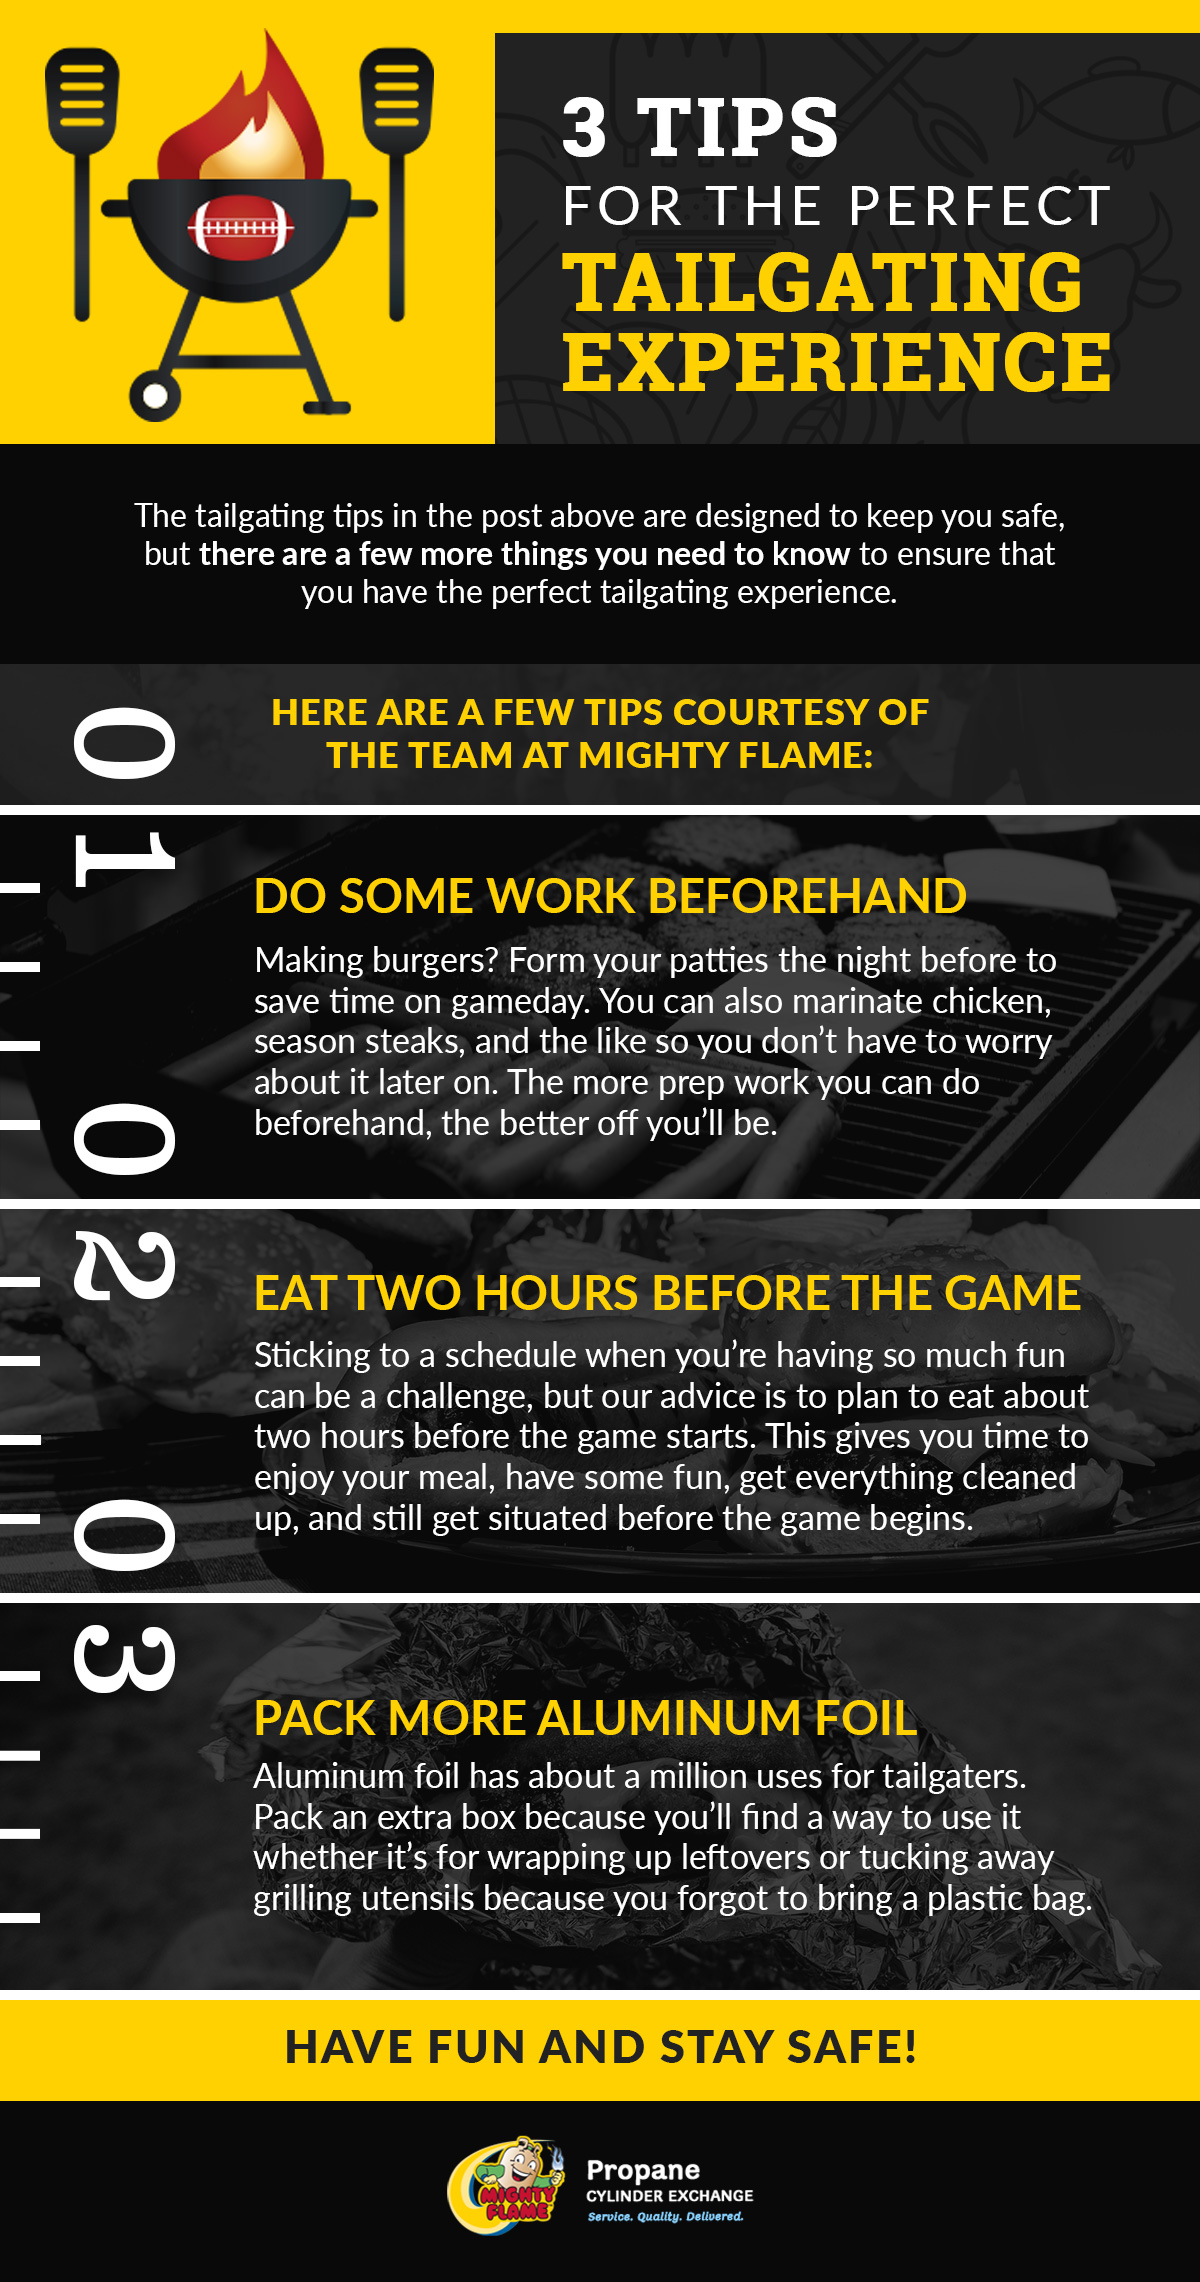 3 Tips For The Perfect Tailgating Experience